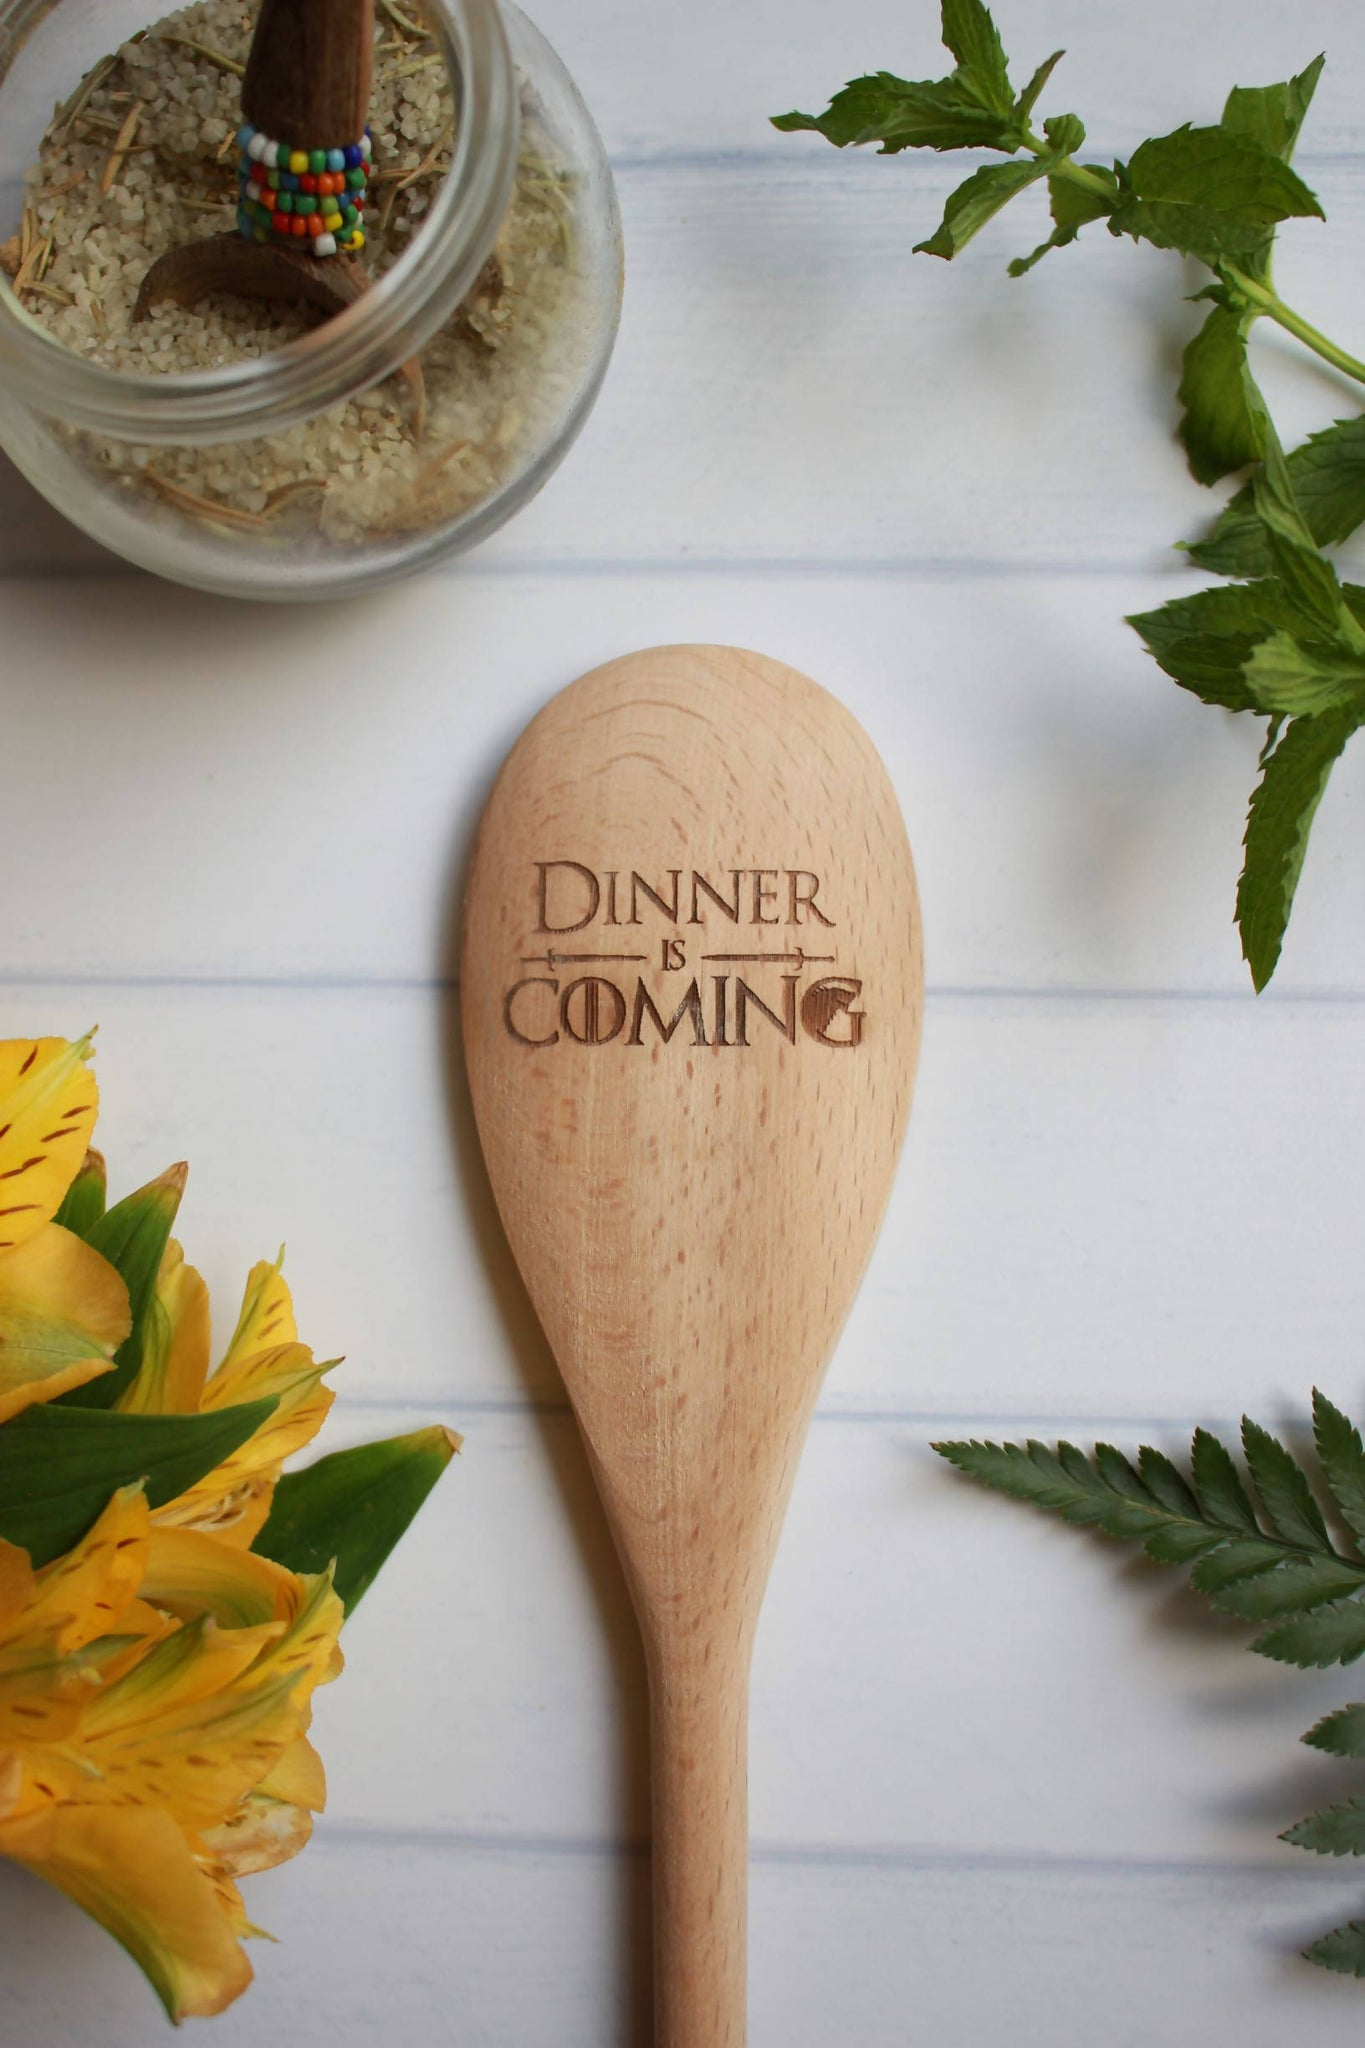 Dinner Is Coming Engraved Wooden Spoon